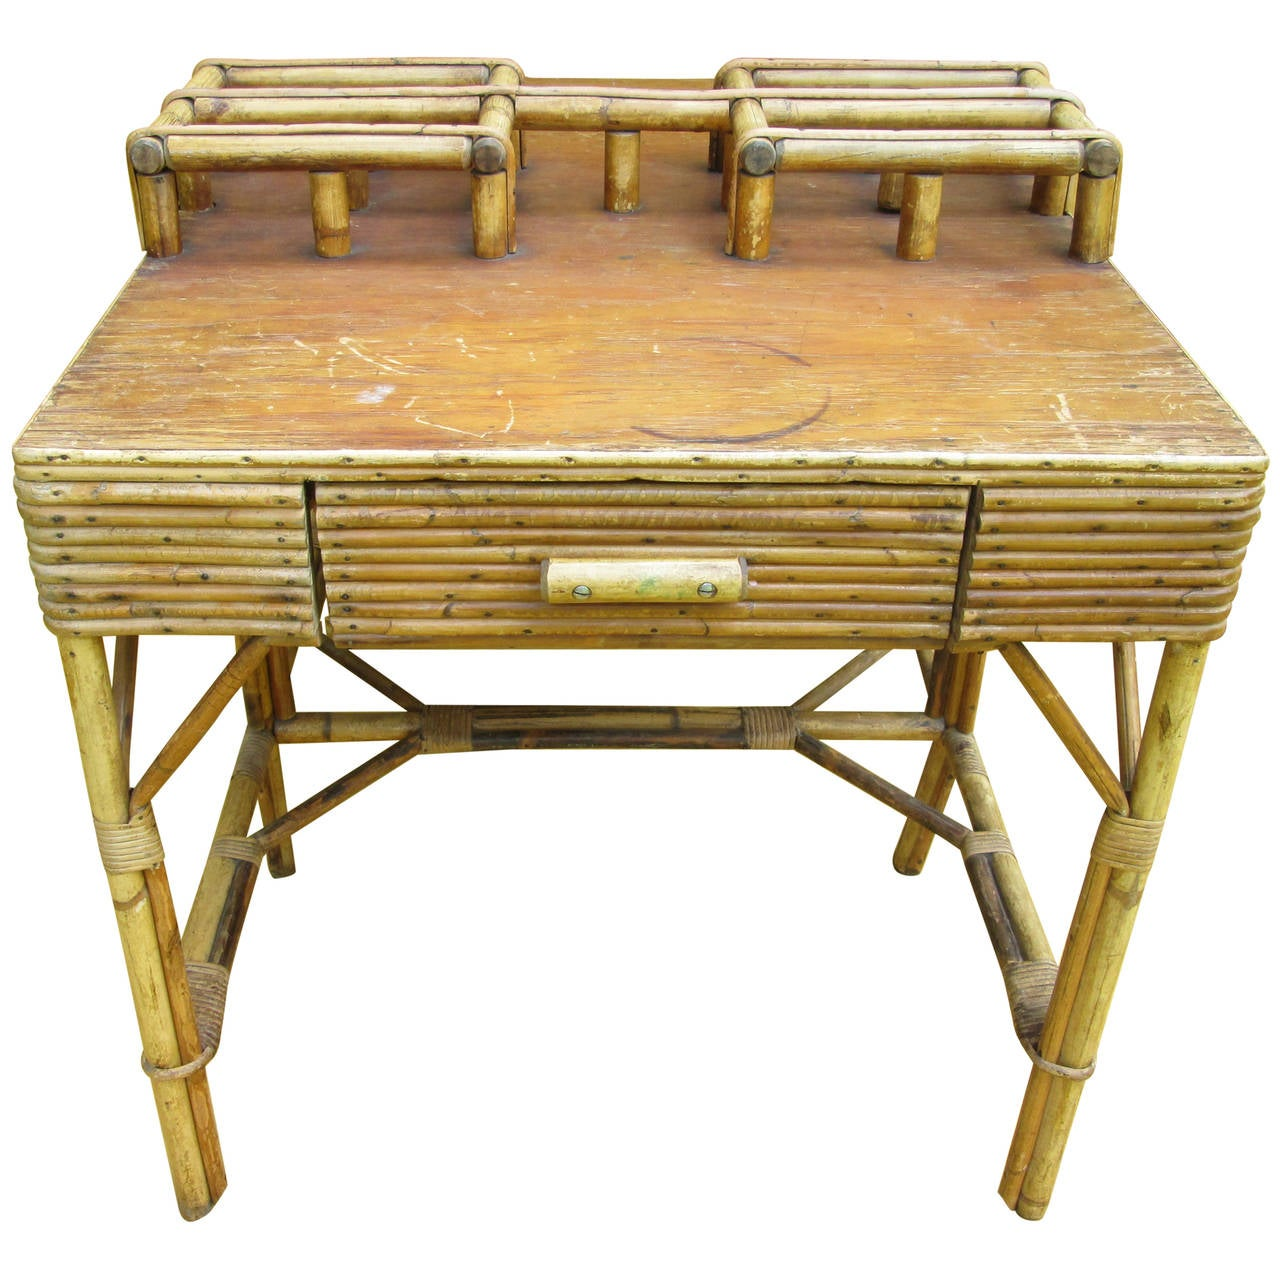 Marvelous photograph of Double Sided Bamboo Desk at 1stdibs with #9C782F color and 1280x1280 pixels